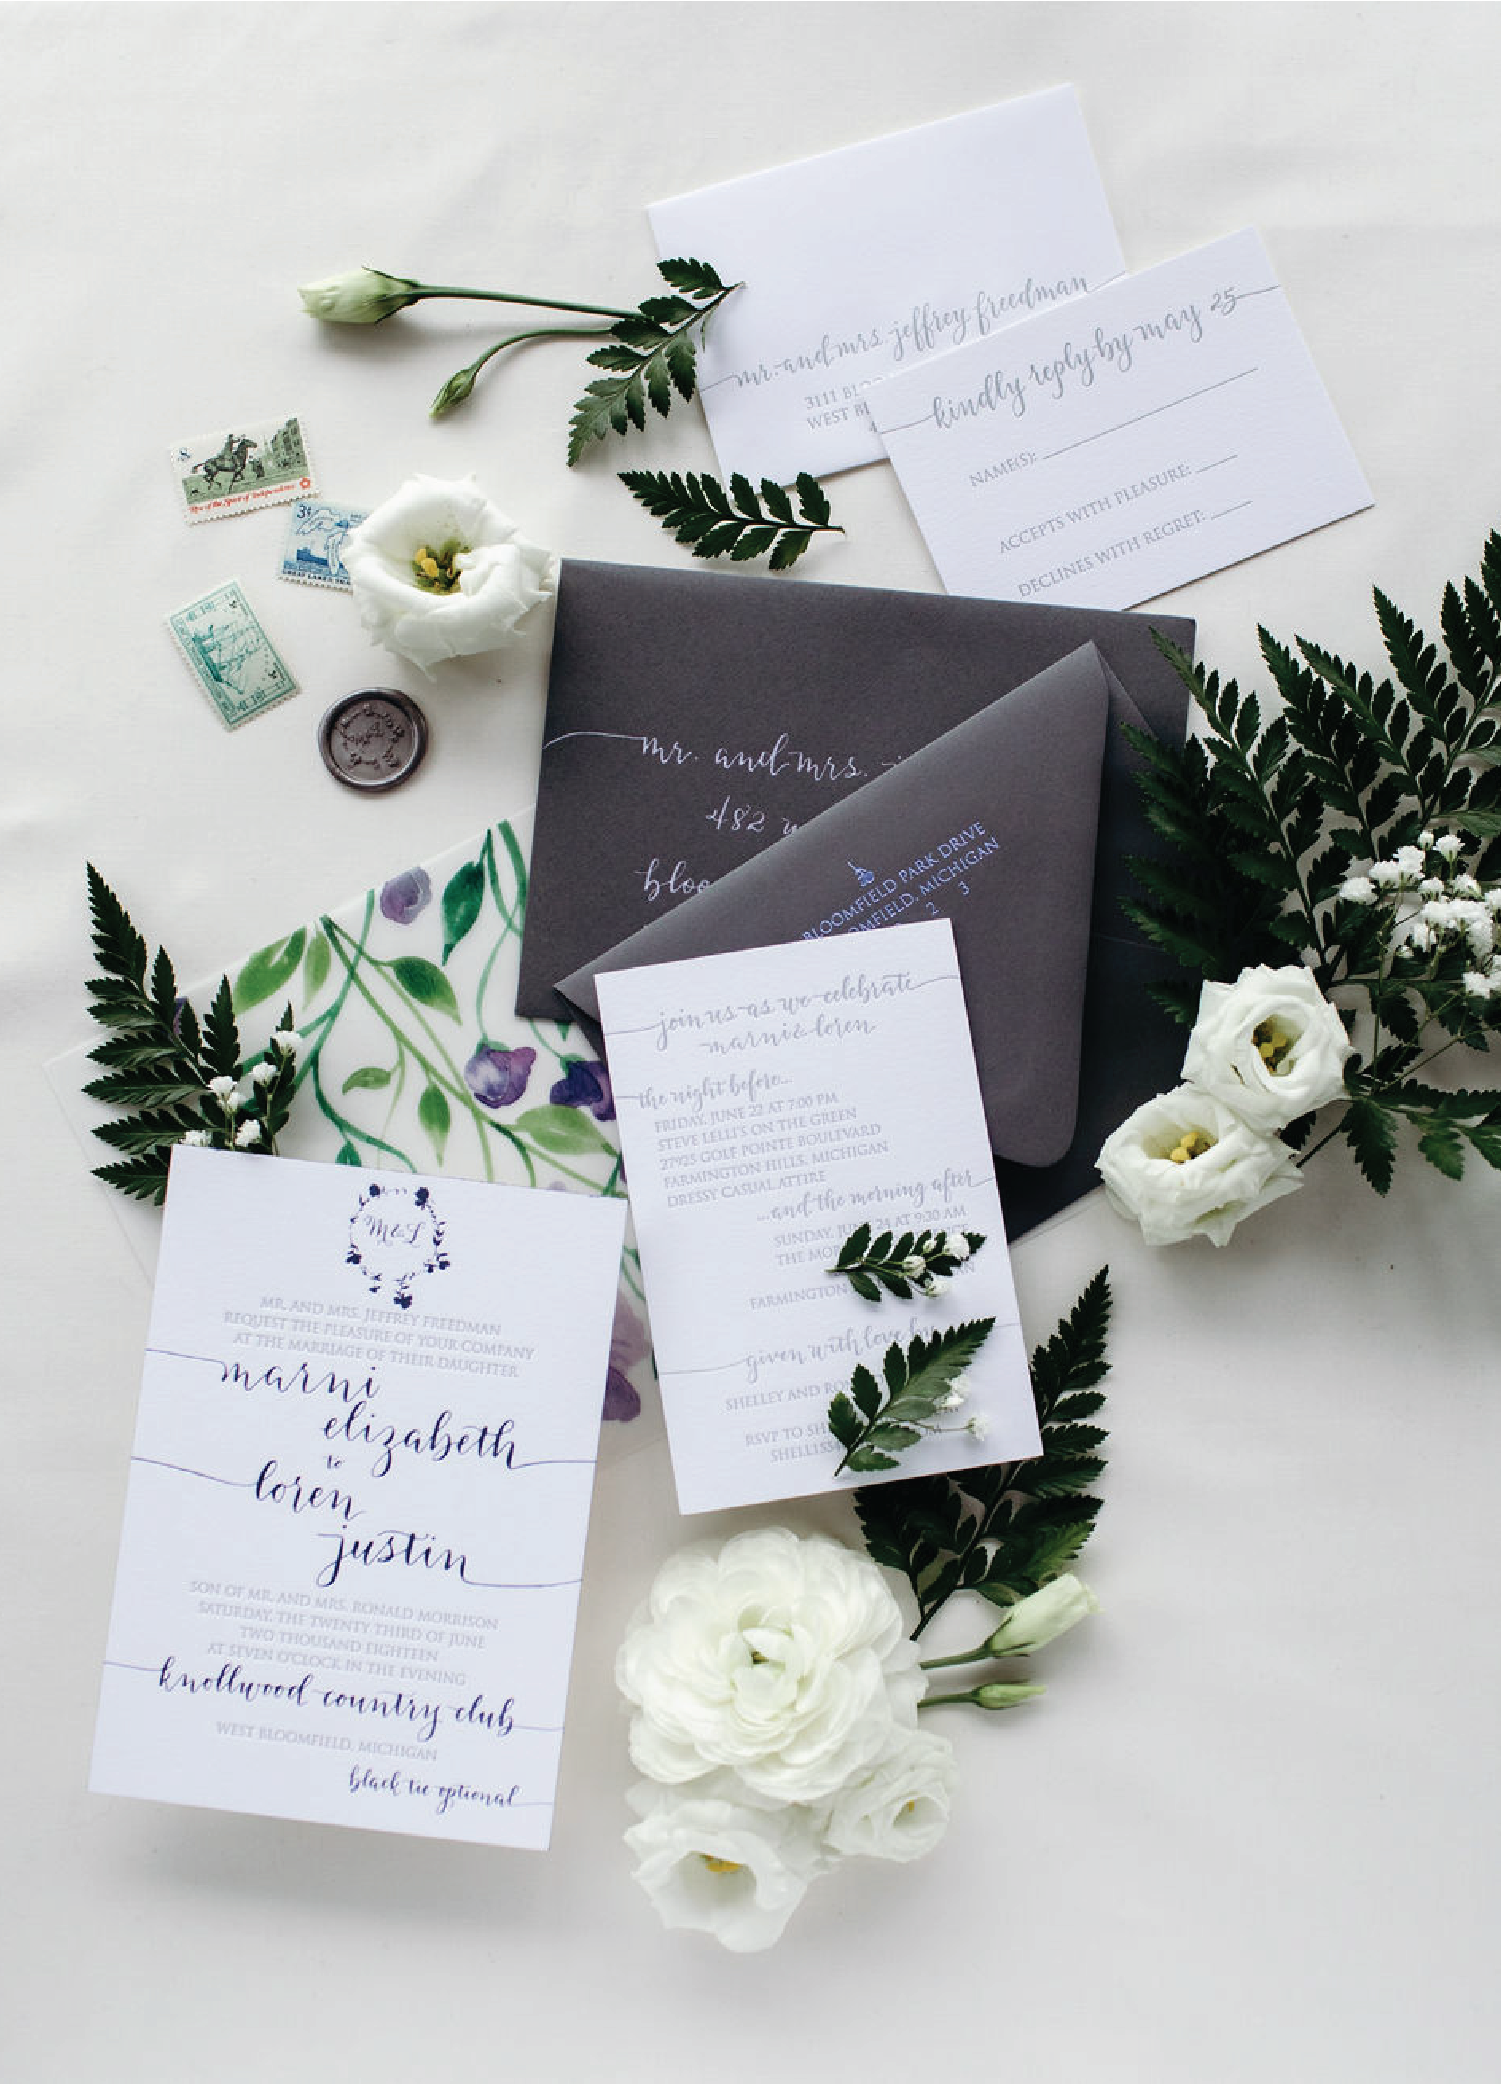 Lilac and grey letterpress and foil stamped wedding invitations with calligraphy by Leah E. Moss Designs for wedding at Knollwood Country Club in Michigan